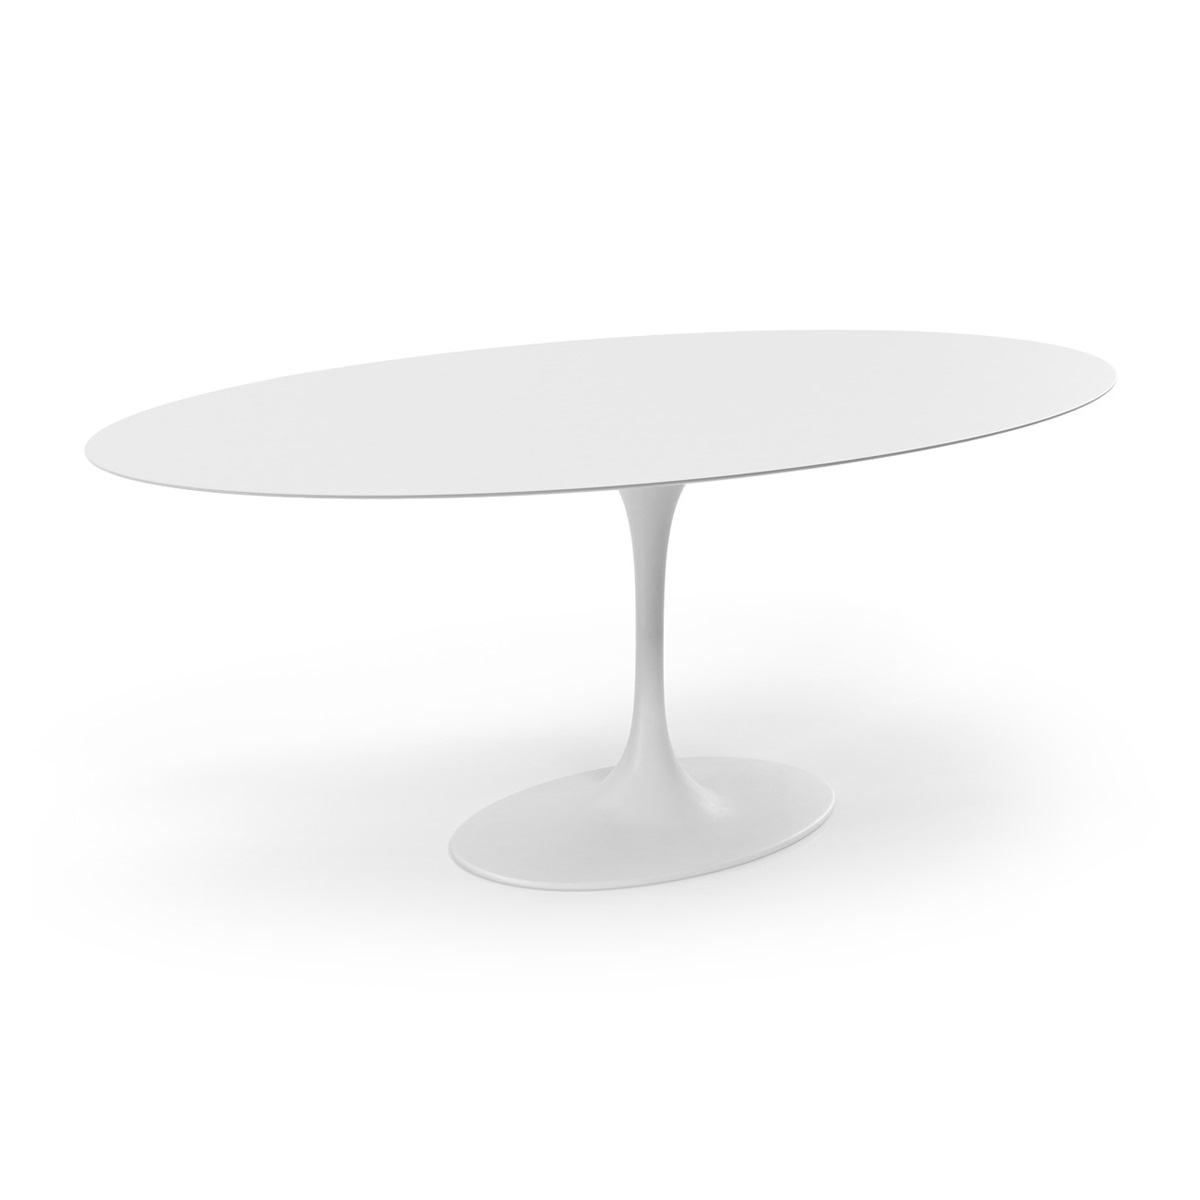 Superieur Saarinen Tulip Oval Dining Table